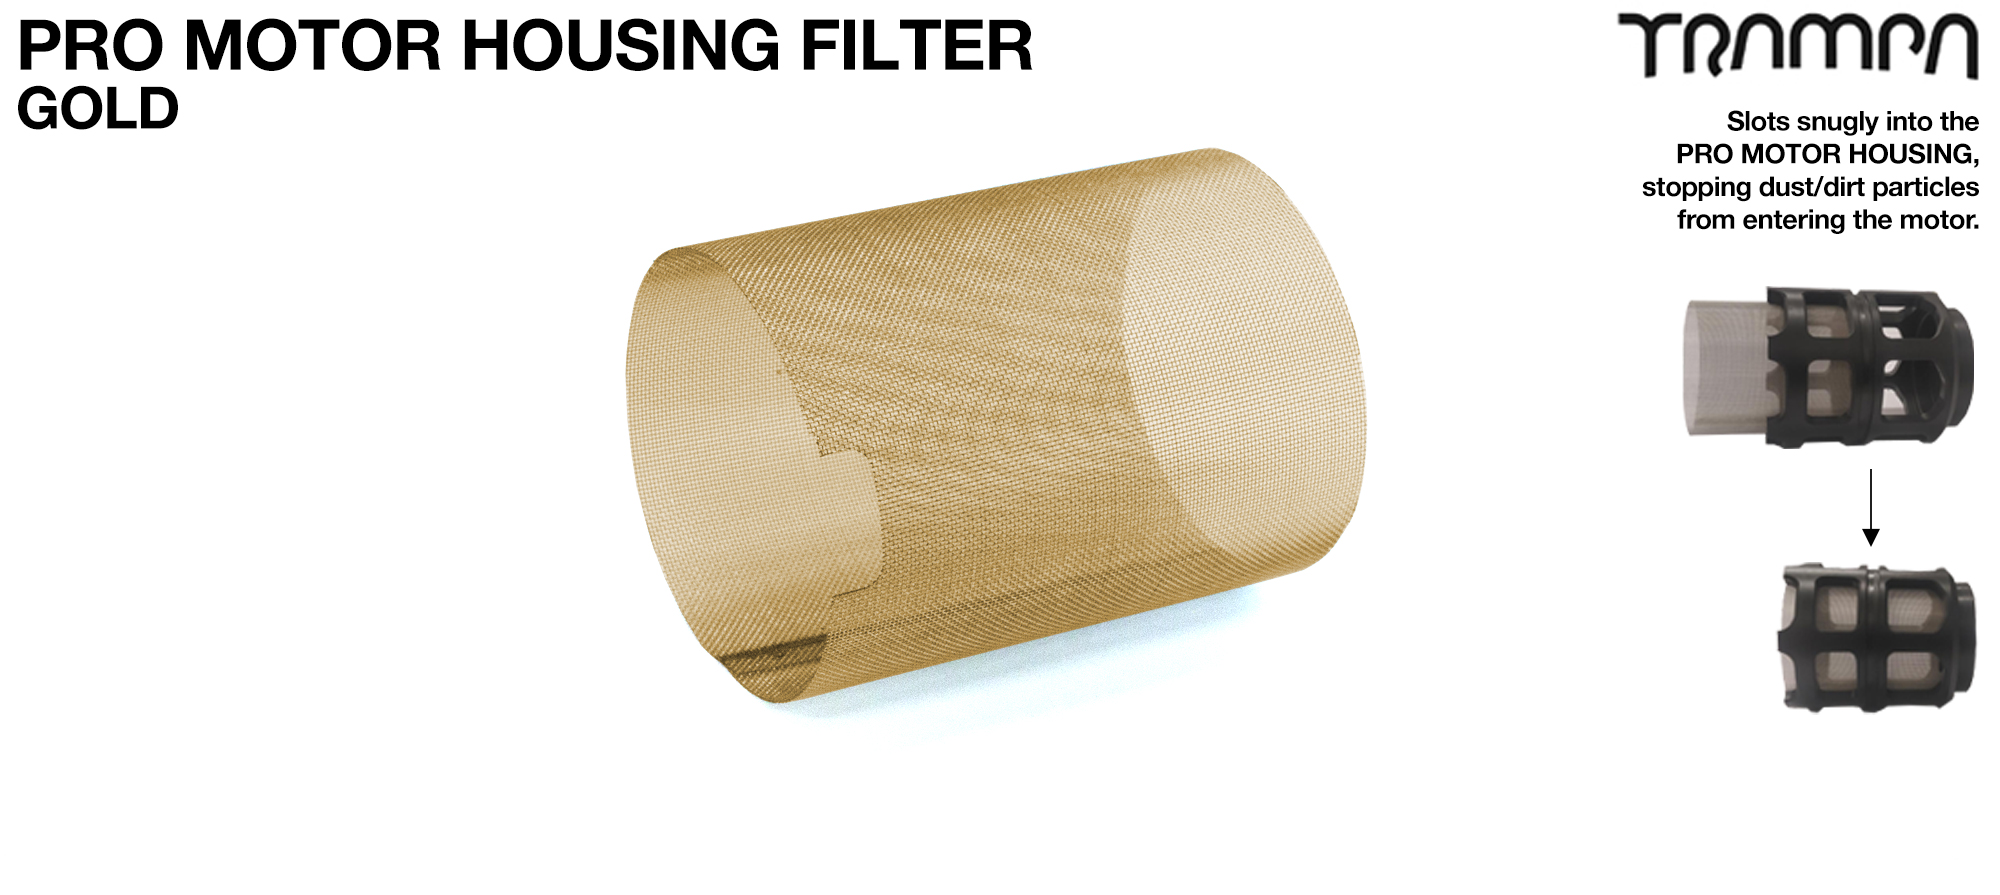 Motor Protection Cover MESH FILTER - GOLD